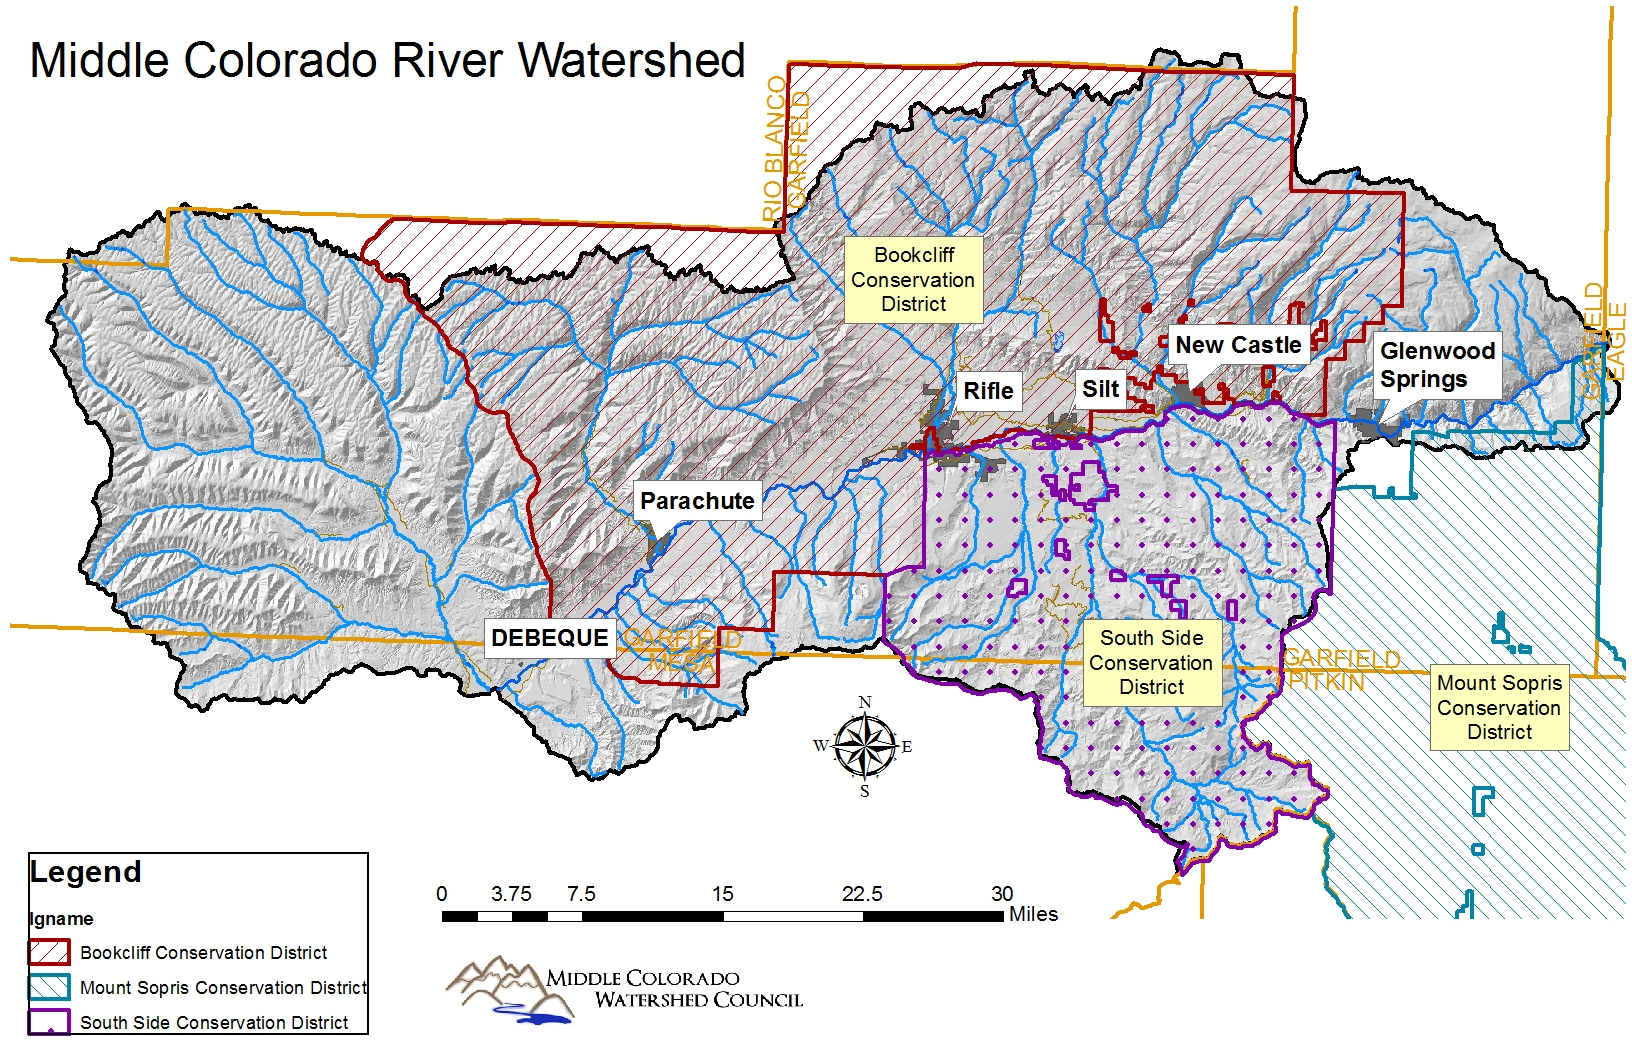 An overview of the middle Colorado River watershed and its Conservation Districts.